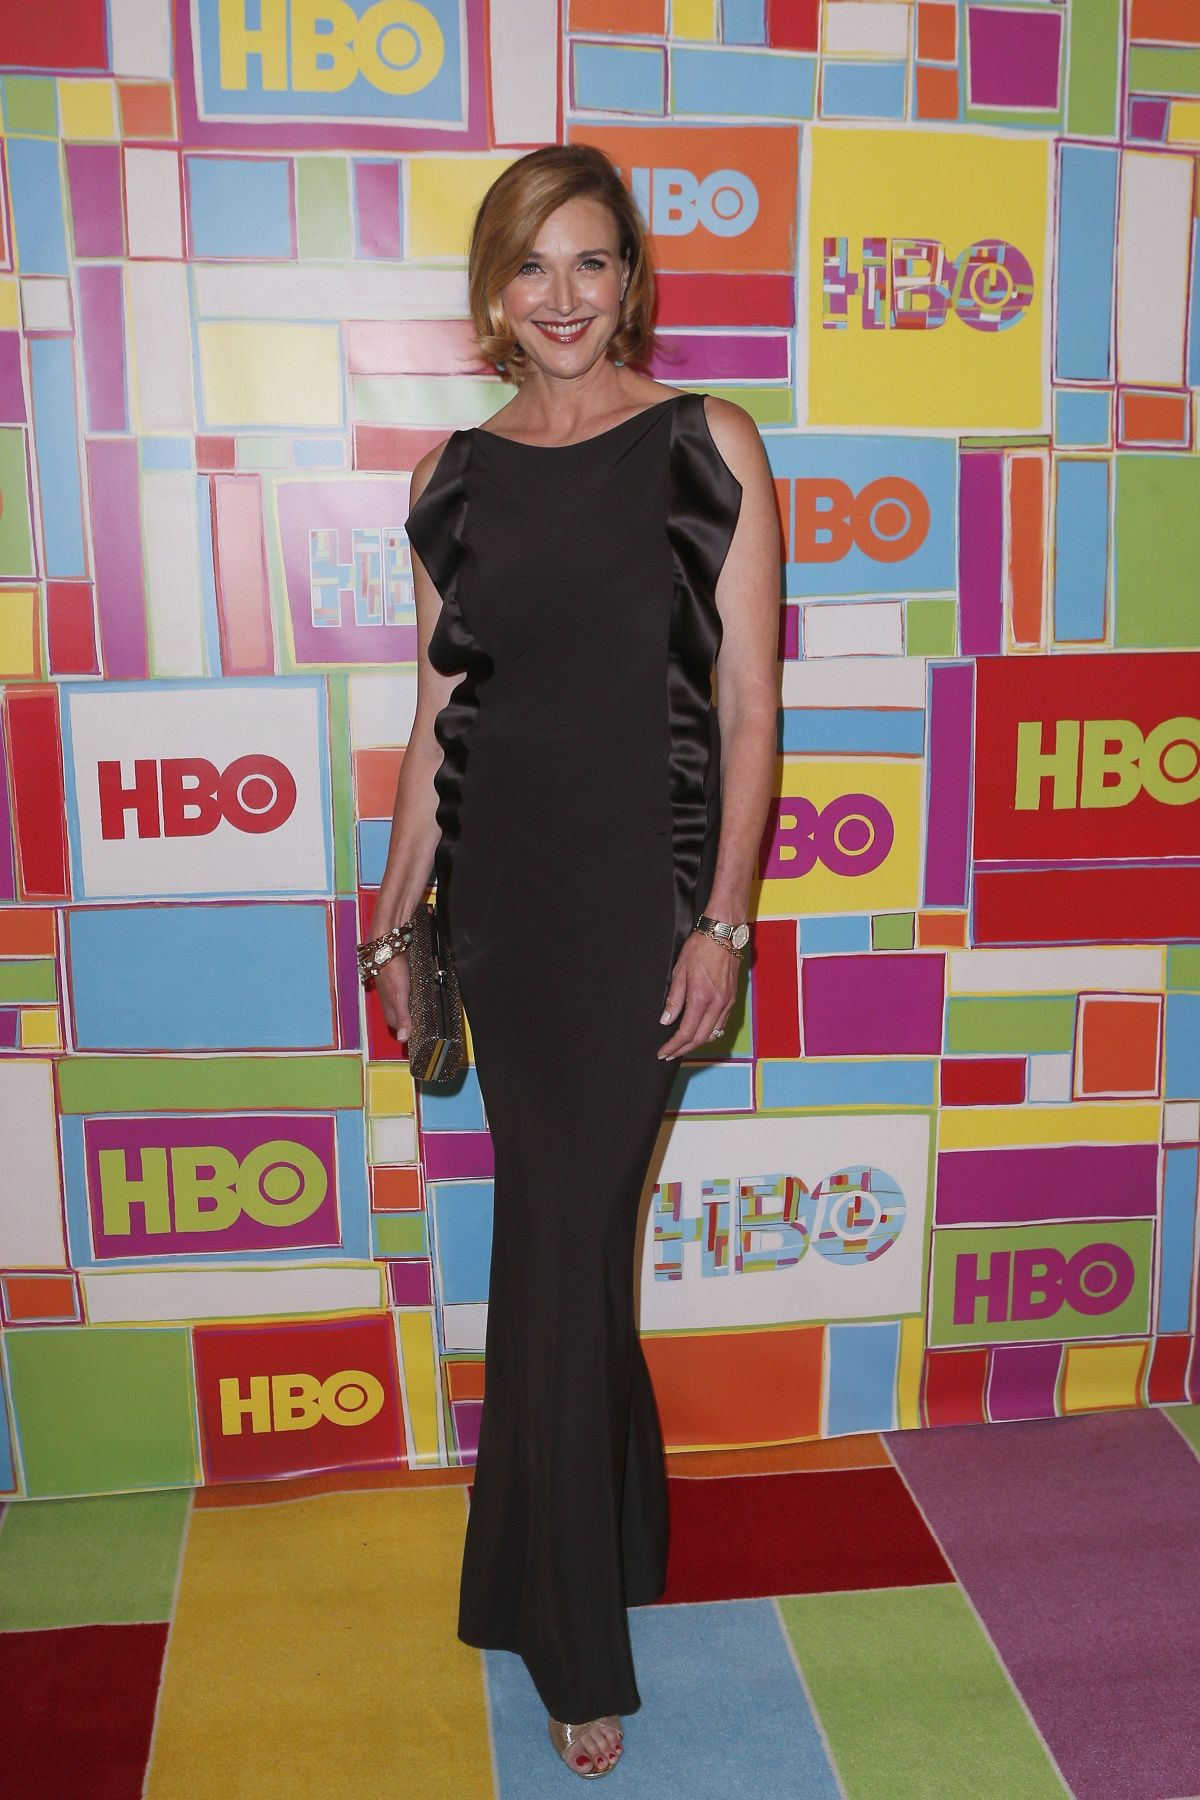 BRENDA STRONG at HBO's Emmy After Party